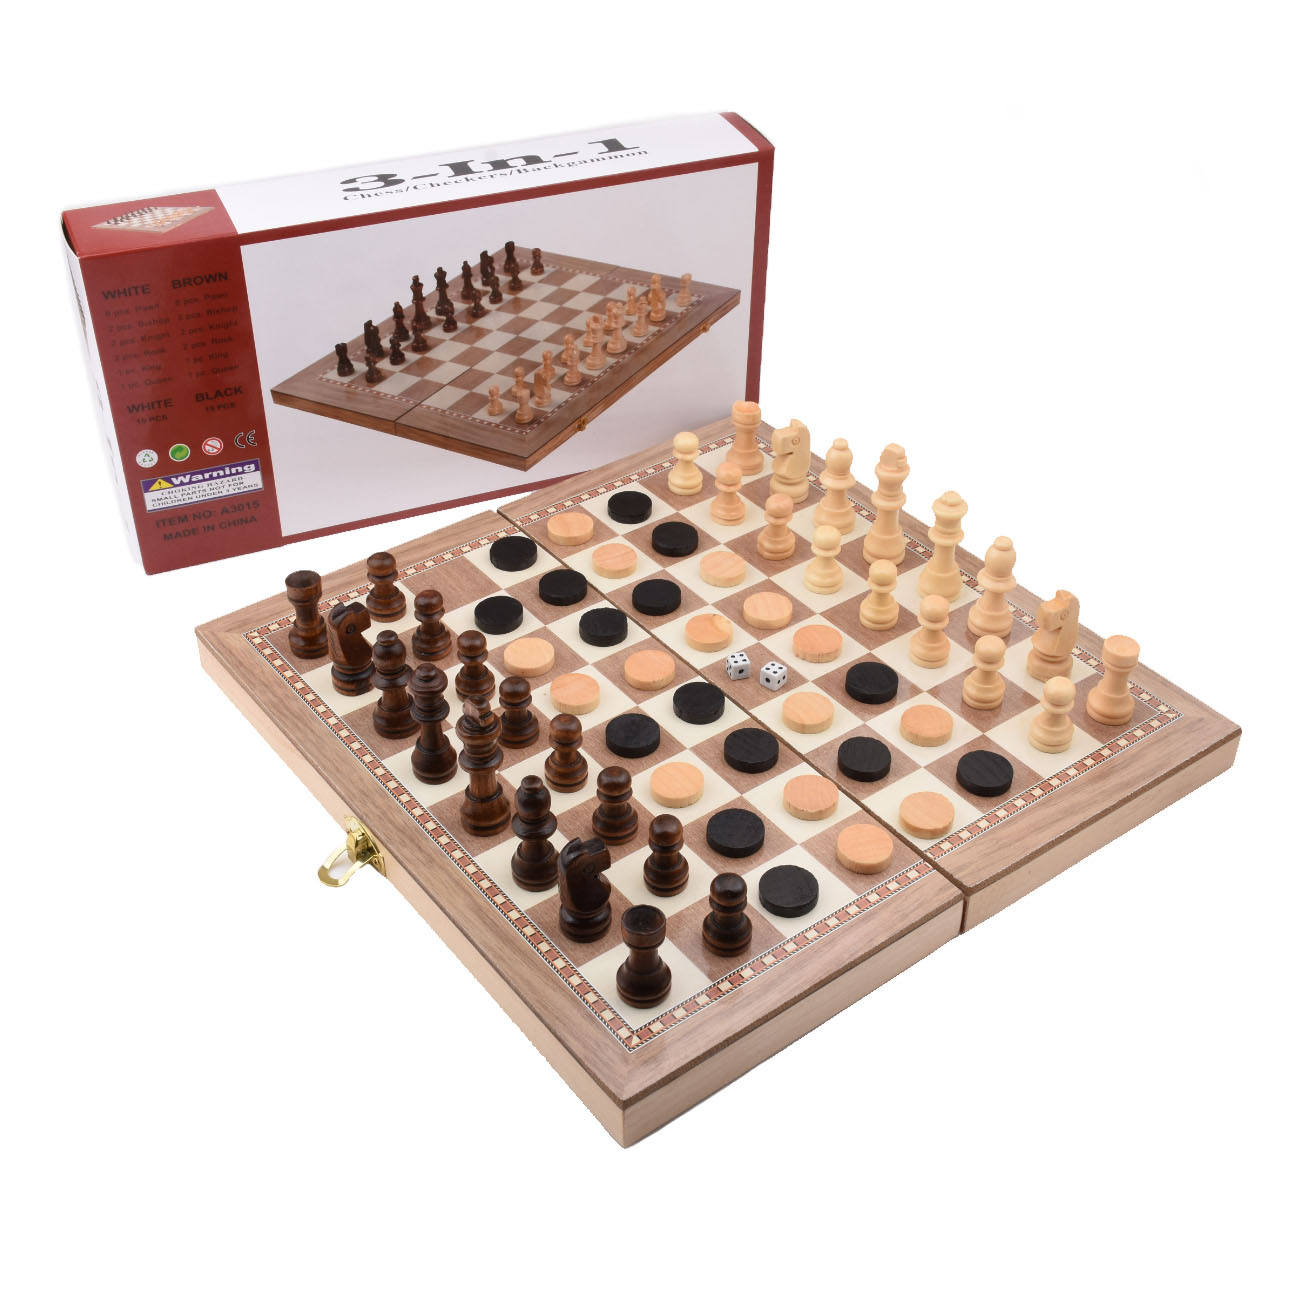 3-in-1 Wooden Backgammon Checkers Folding Board Chess Set Kids Teens Adults Chess Games chess set luxury